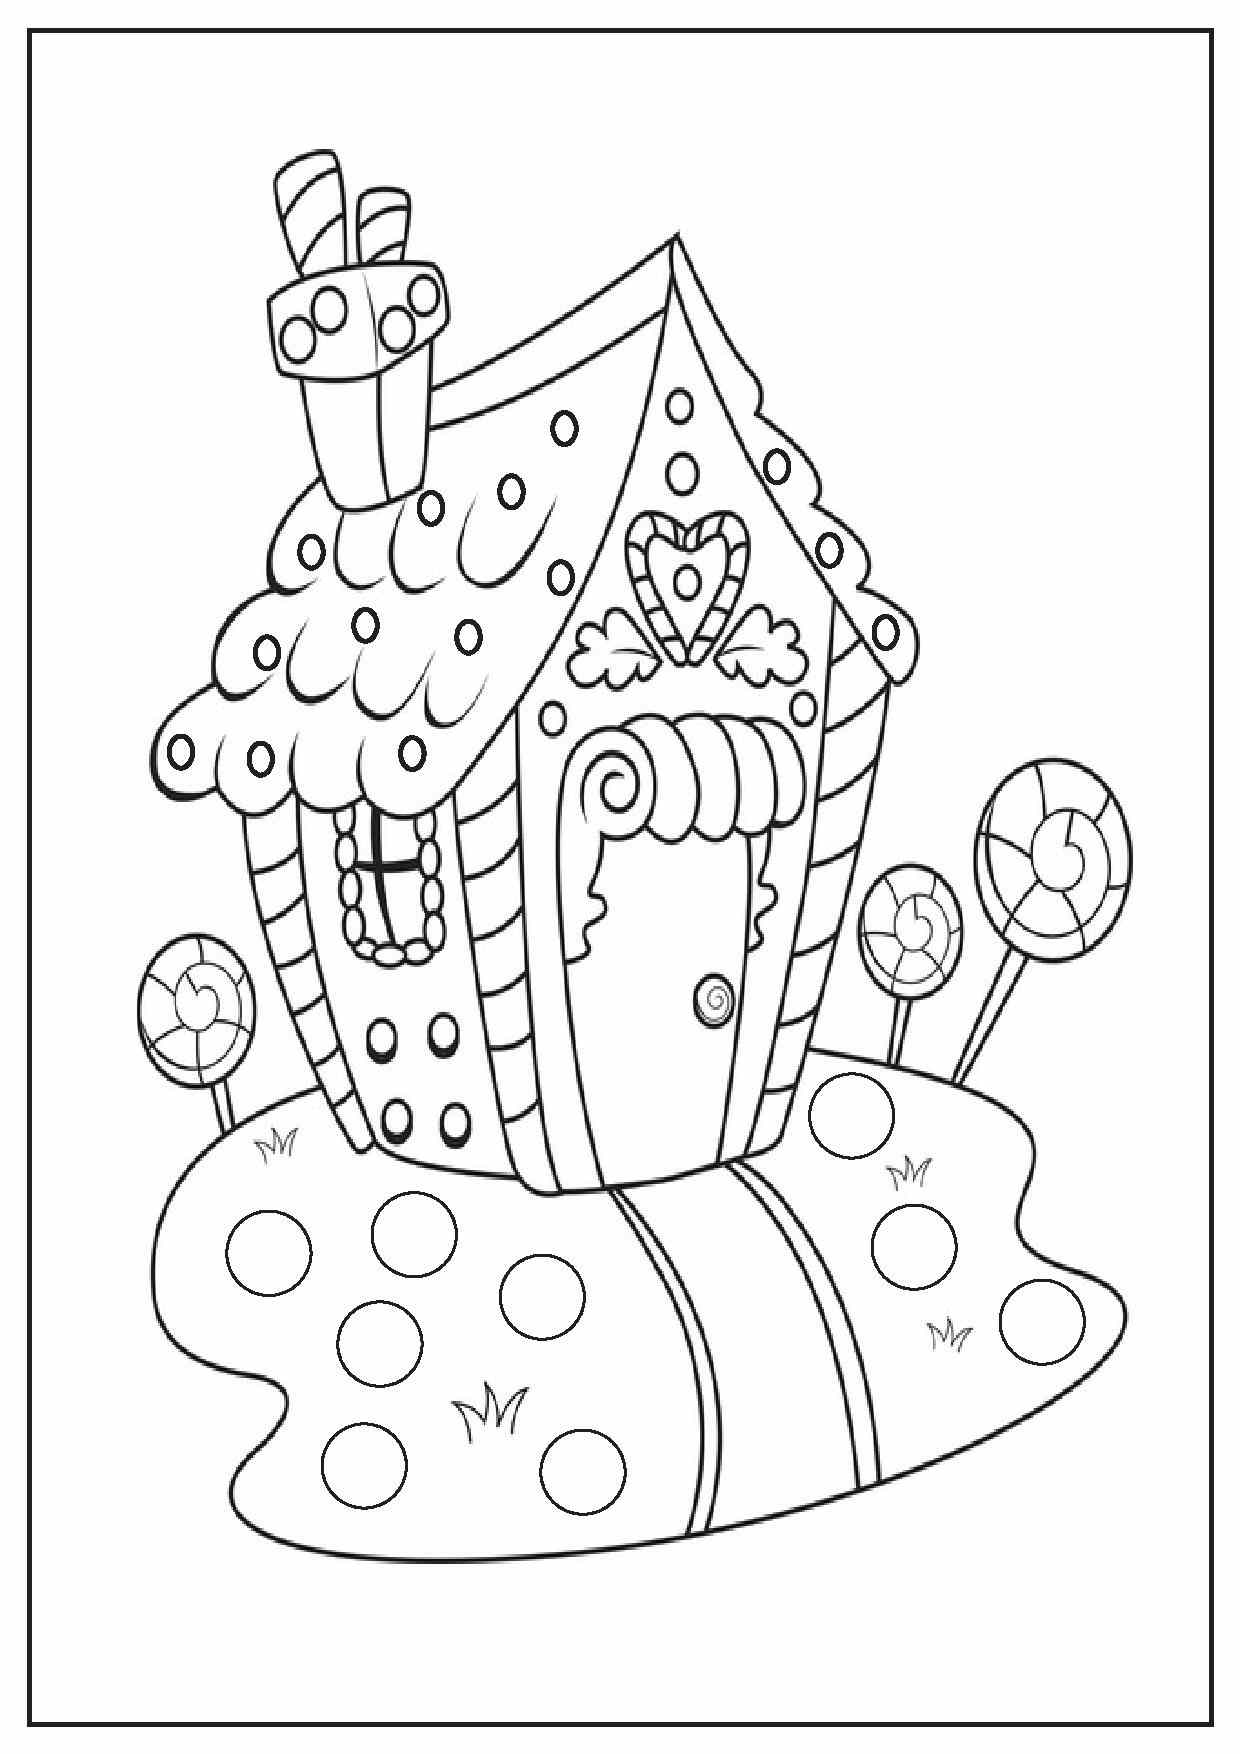 Christmas Coloring Page Pdf Coloring Pages For All Ages Coloring Home